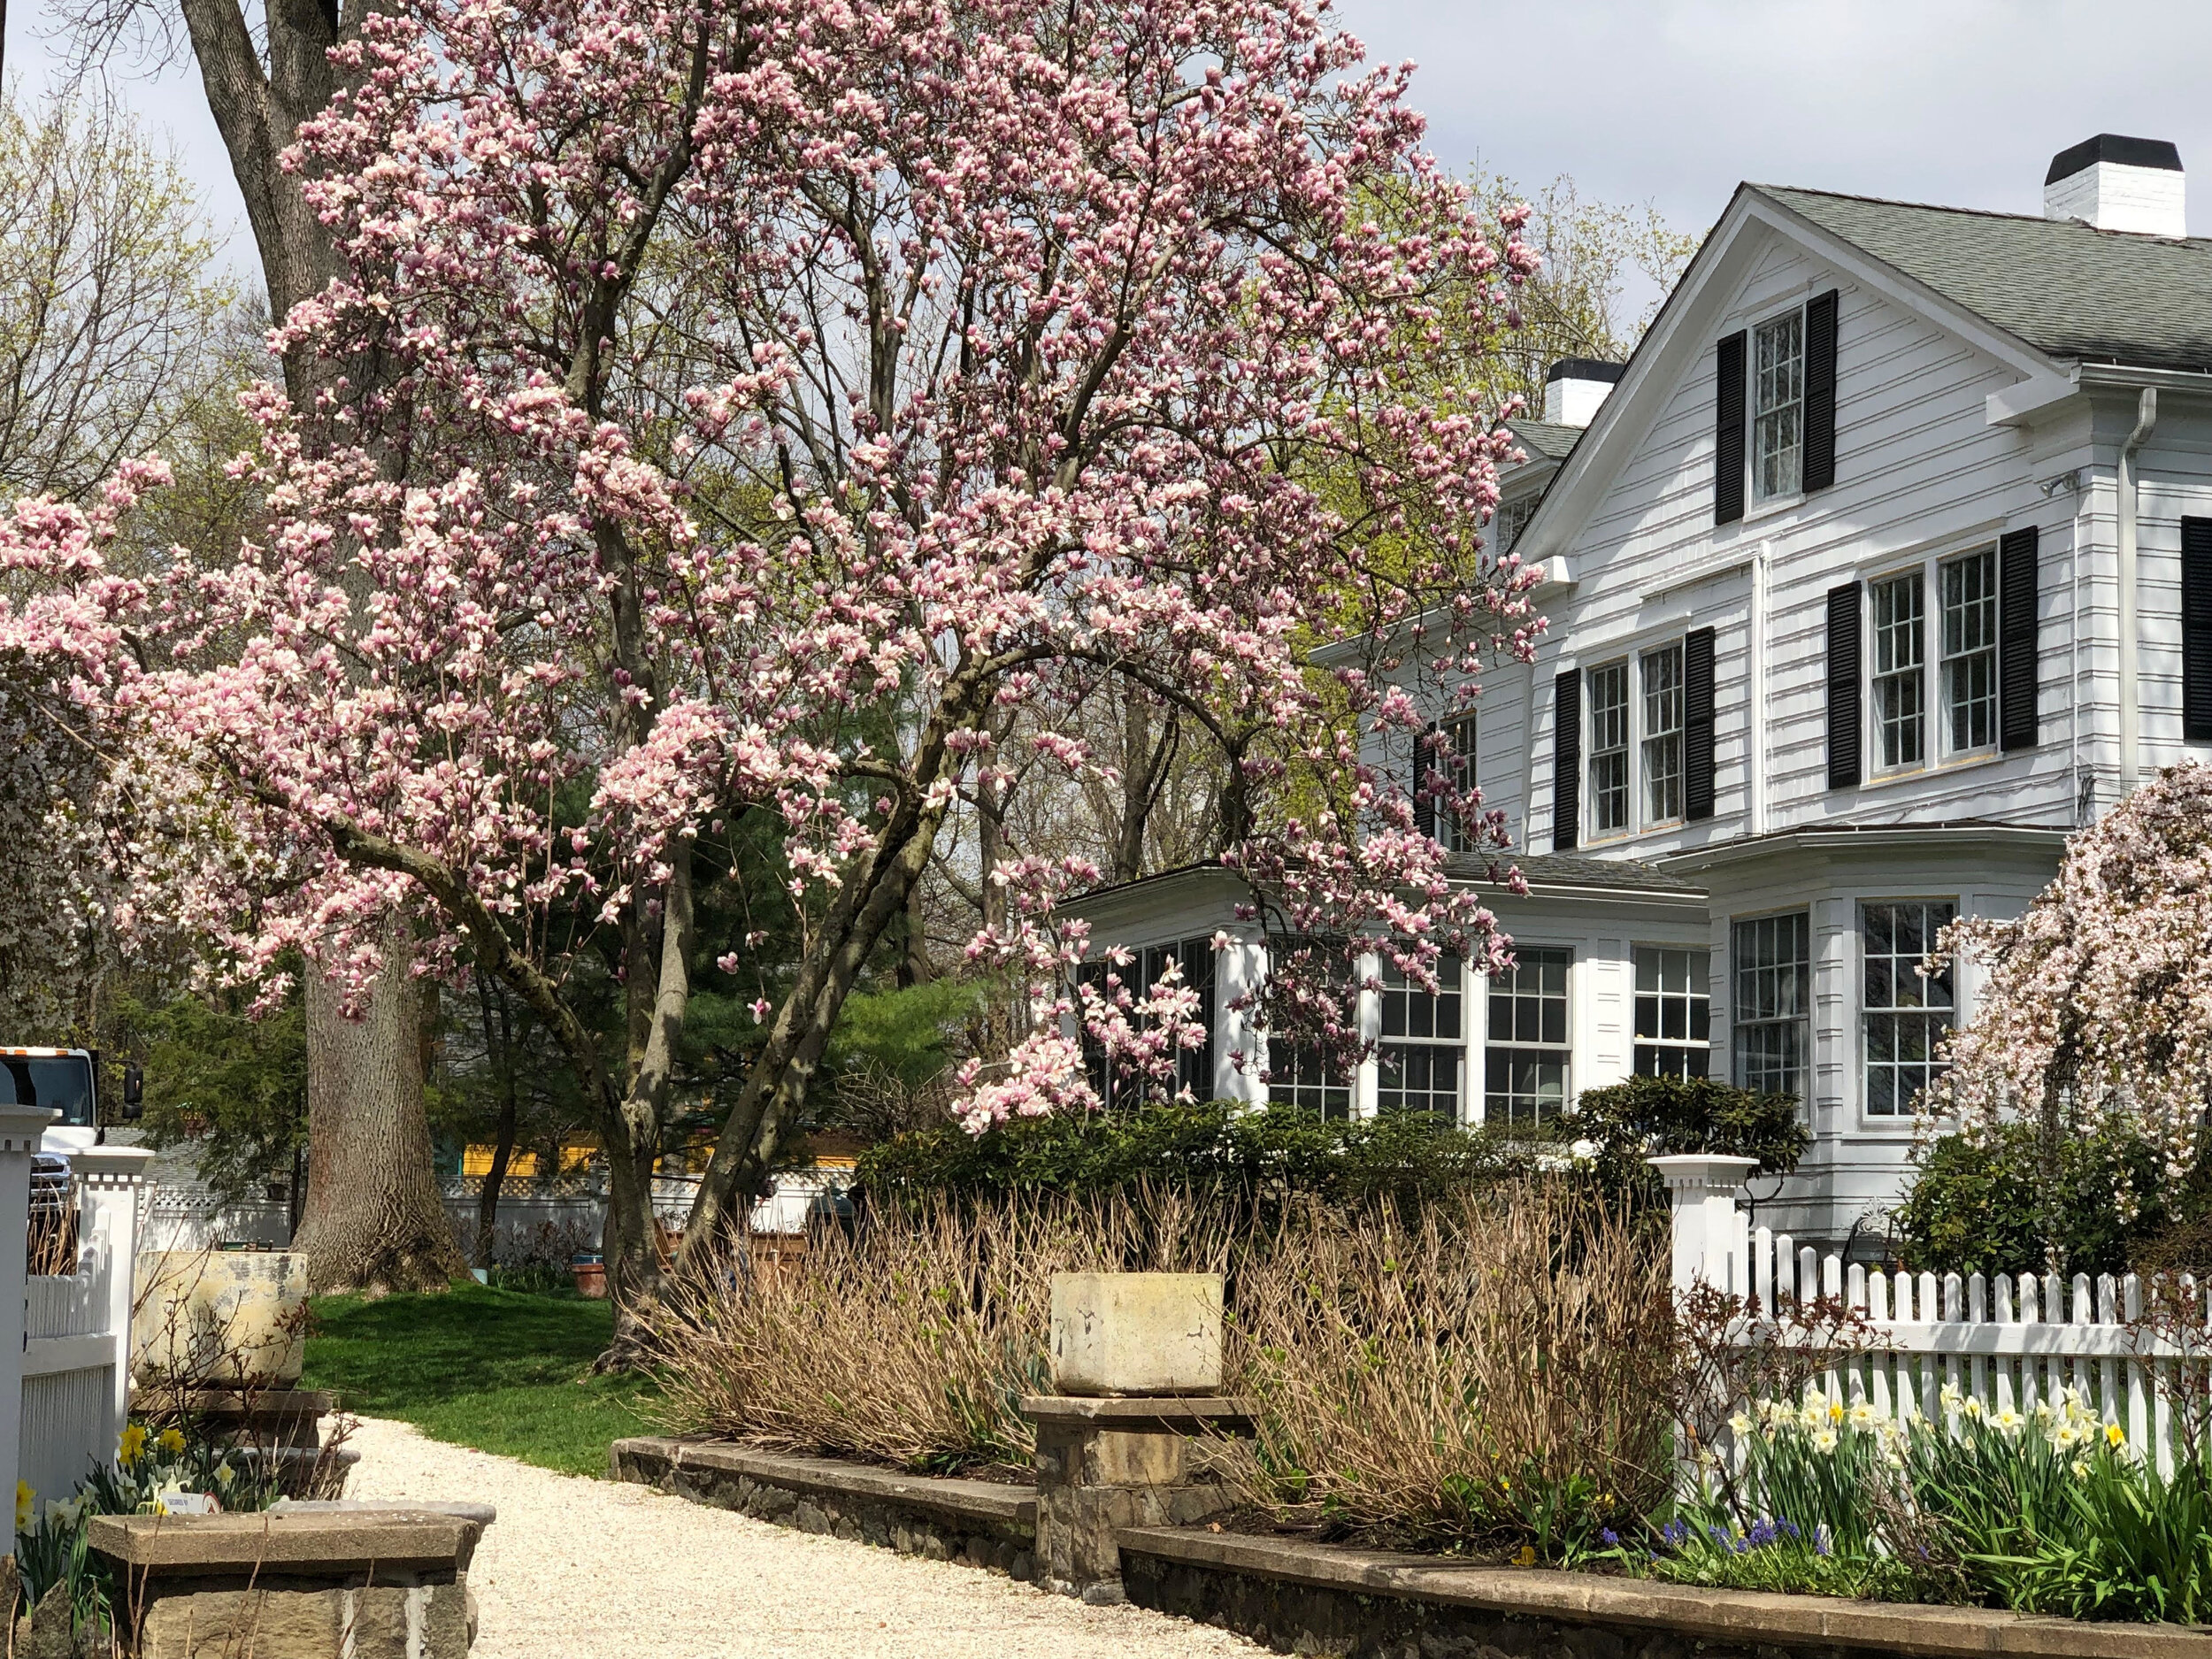 A classic Old Greenwich landmark garden on the corner of Sound Beach and Shore Road is the stunning Evans house and garden. The flowering magnolia and cherry trees are a happy sight on the way to Greenwich Point.